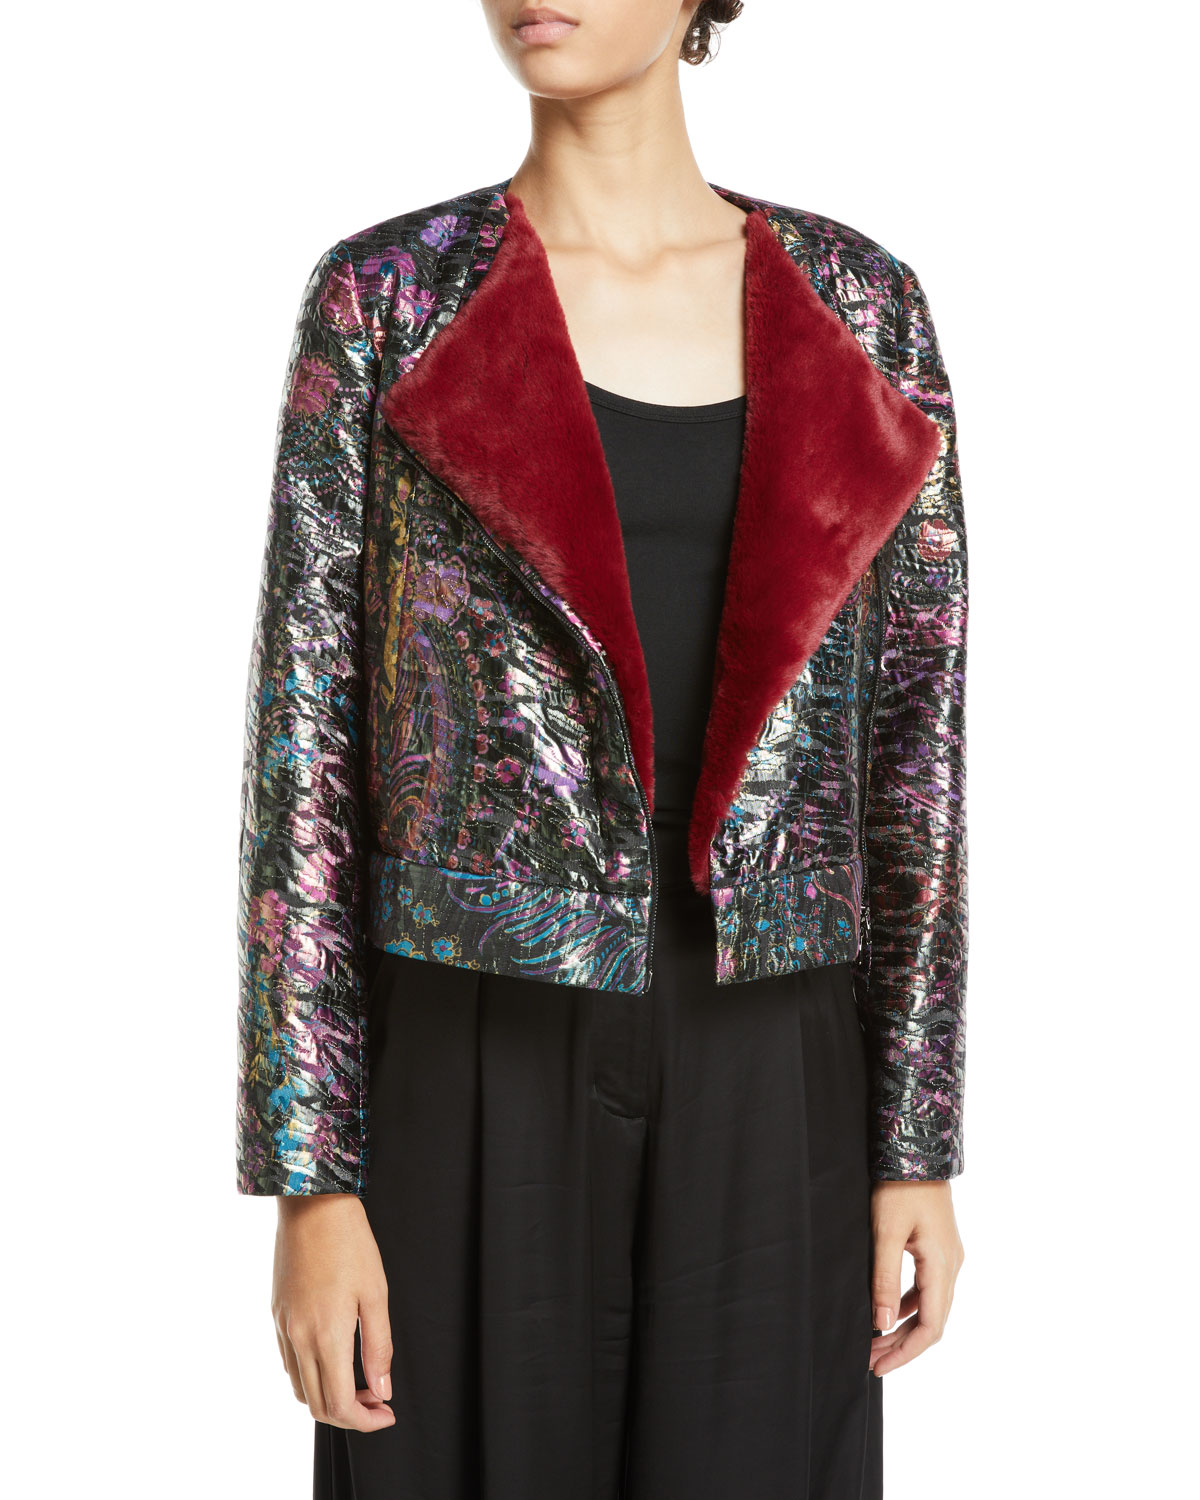 Metallic Jacquard Cropped Jacket with Faux-Fur Lining